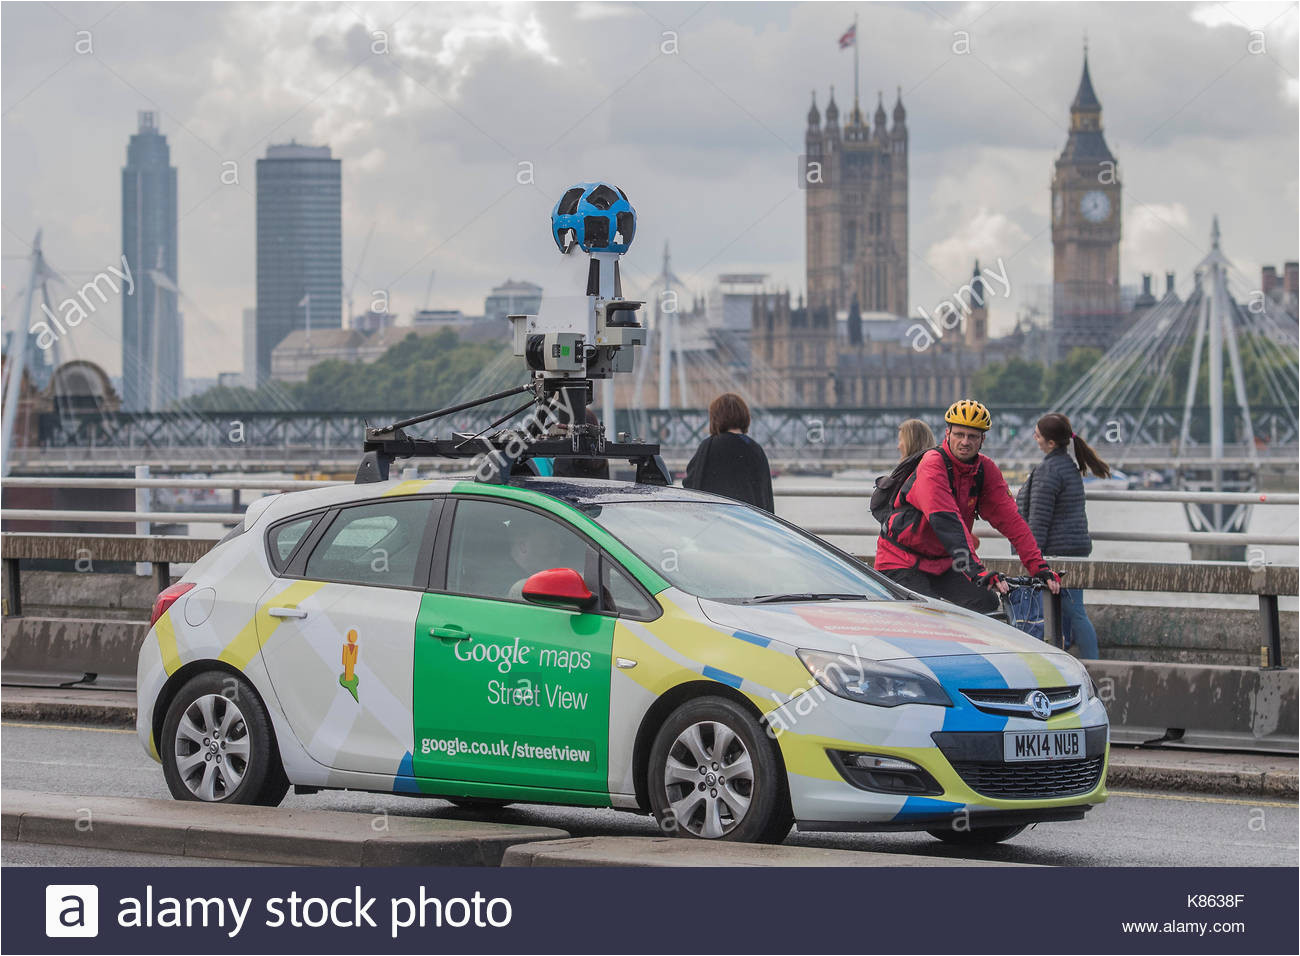 google maps car stock photos google maps car stock images alamy